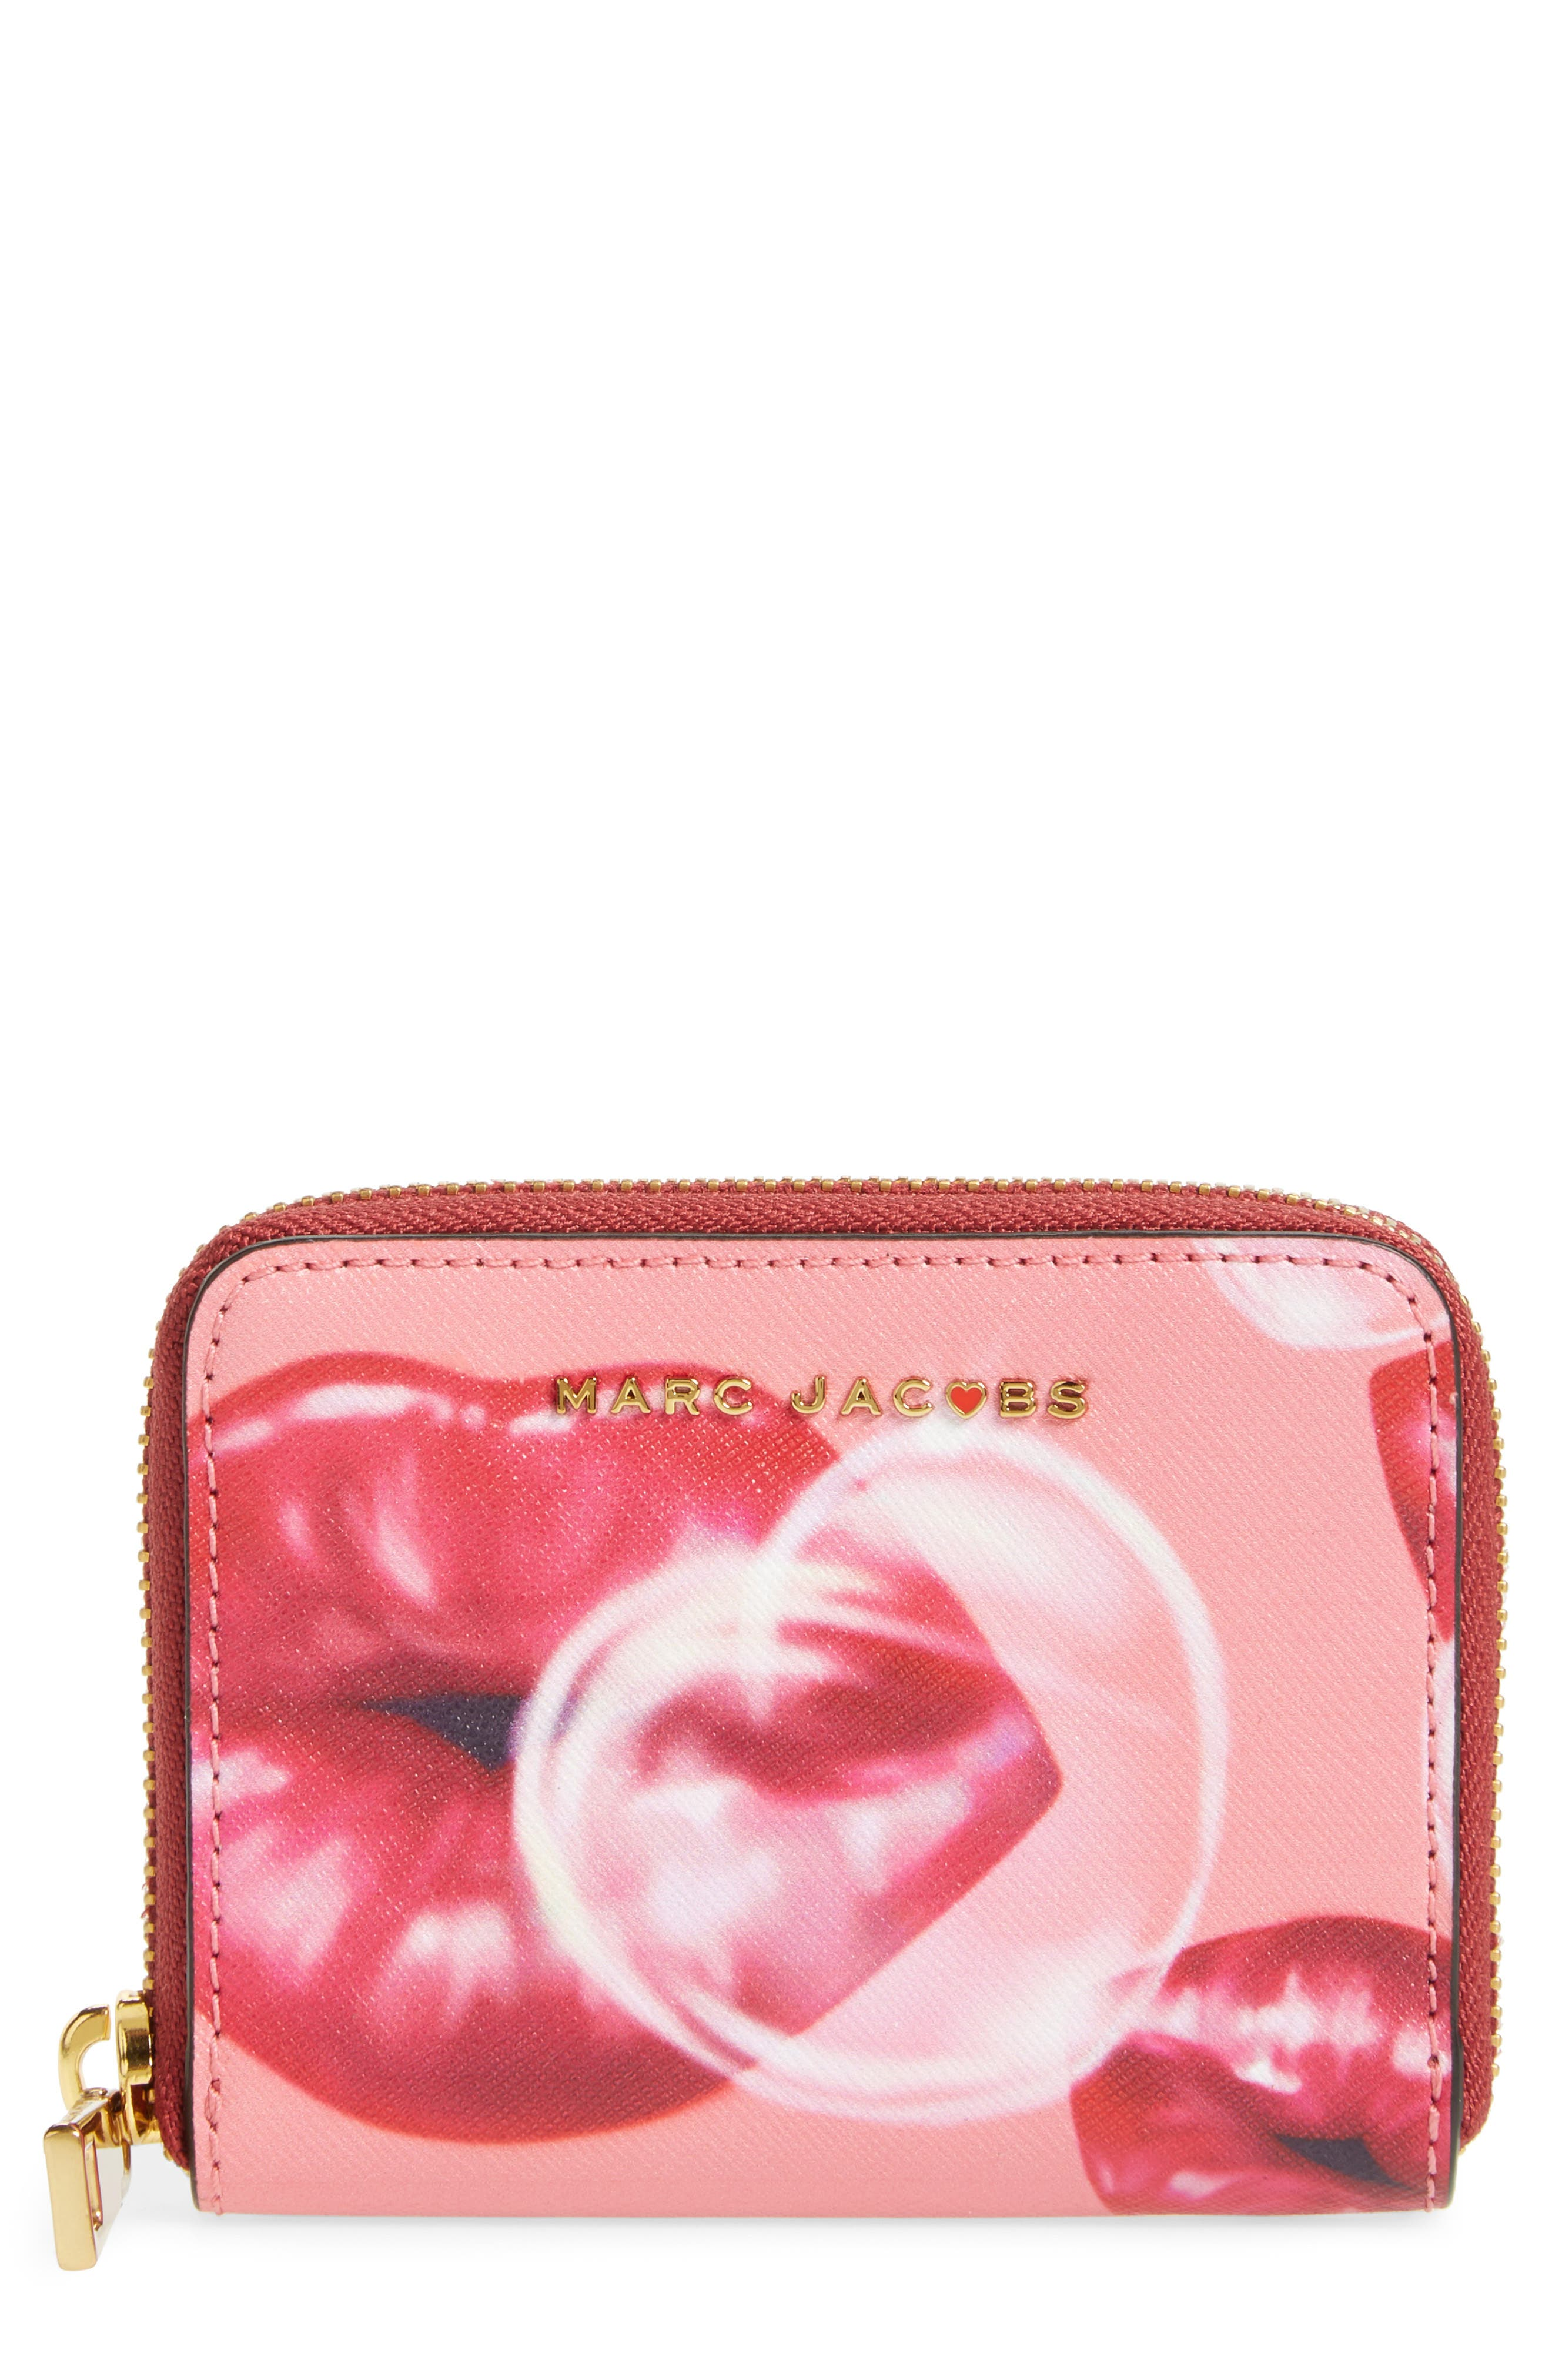 Main Image - MARC JACOBS Lips Saffiano Leather Zip Around Wallet